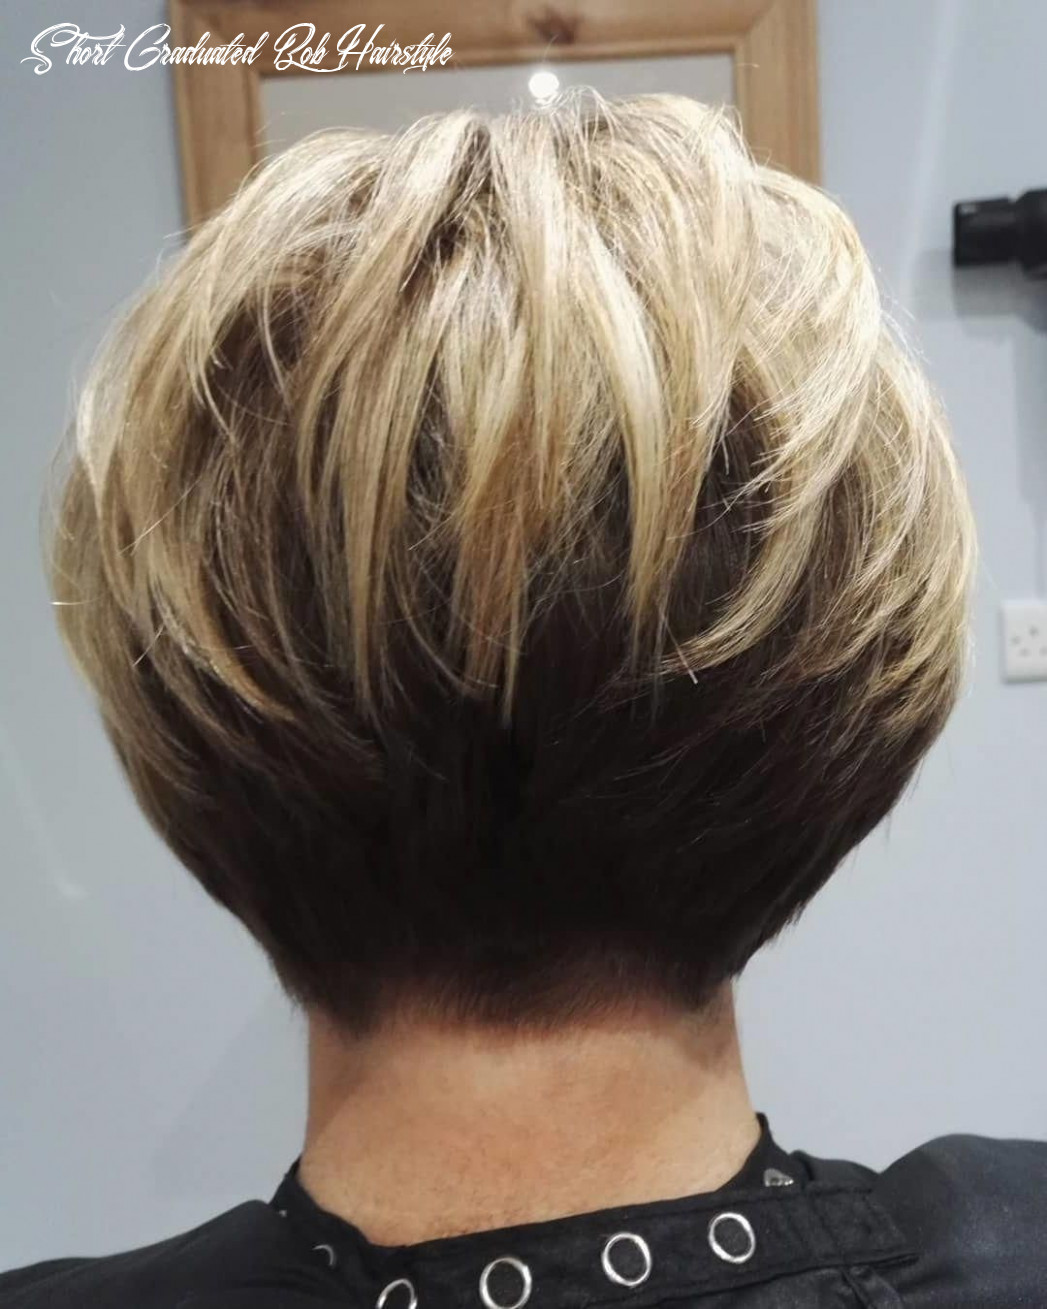 Bob haircuts I adore. #howtostylebobhairstyles | Bob hairstyles ...